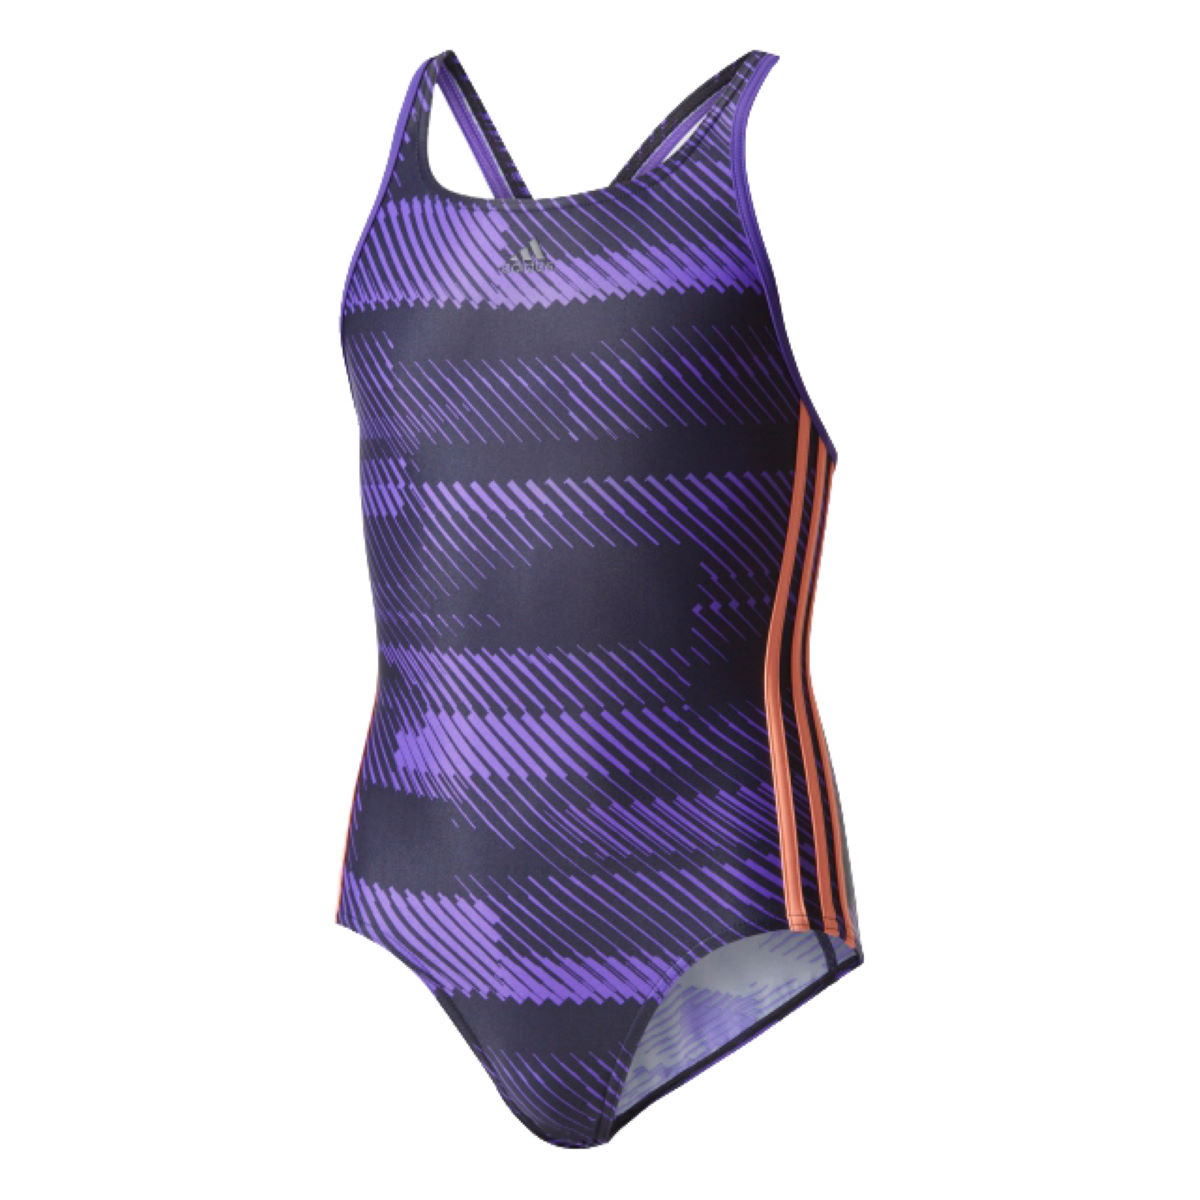 Adidas girl s allover print swimsuit internal sunglow legend ink aw17 bs0279 104cm 0